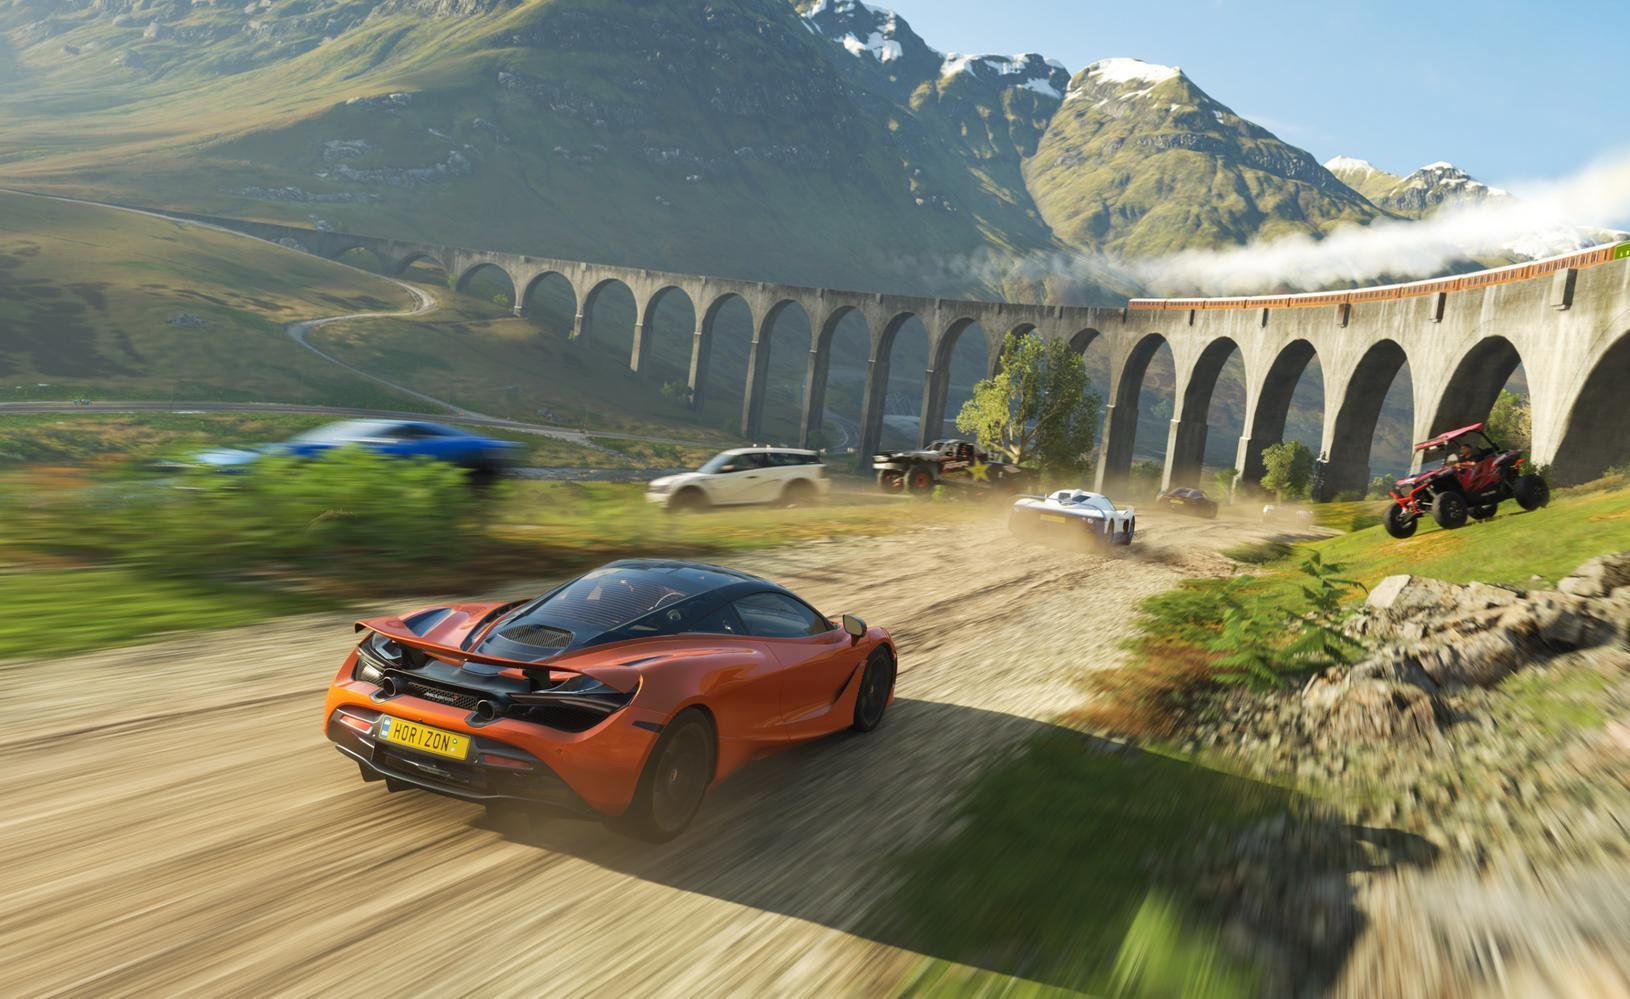 Forza Horizon 4 review: Xbox gets its best driving game, and Britain gets its best ever outing